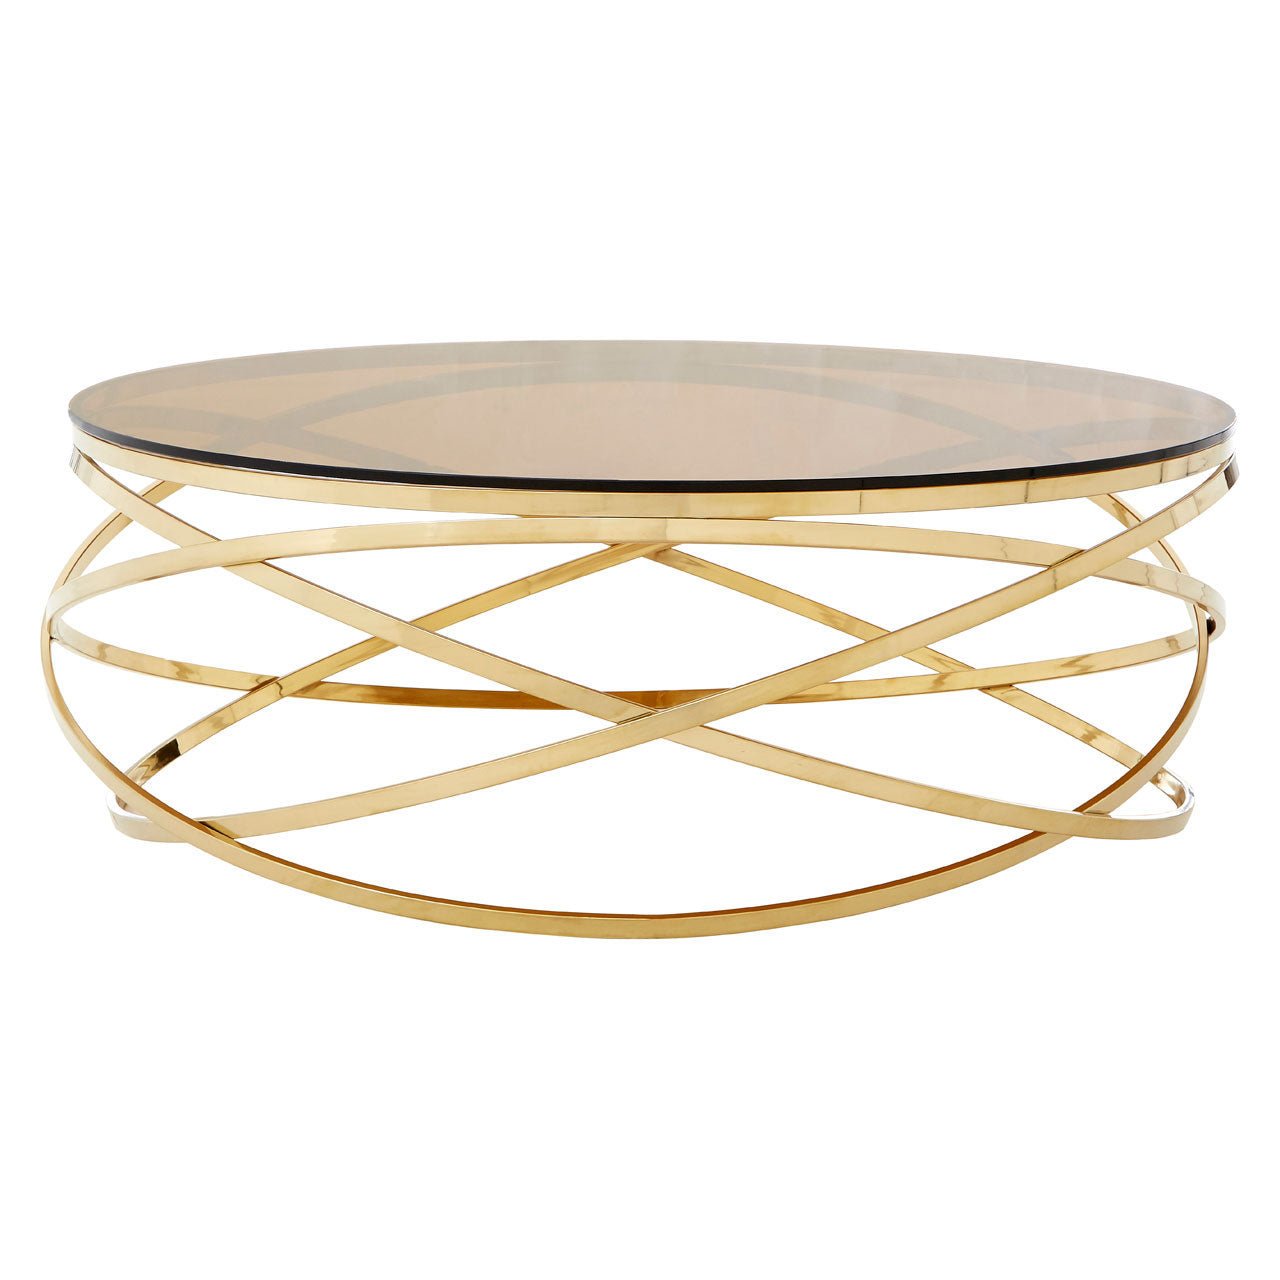 Allure Round Low Coffee Table Champagne Gold - Ezzo